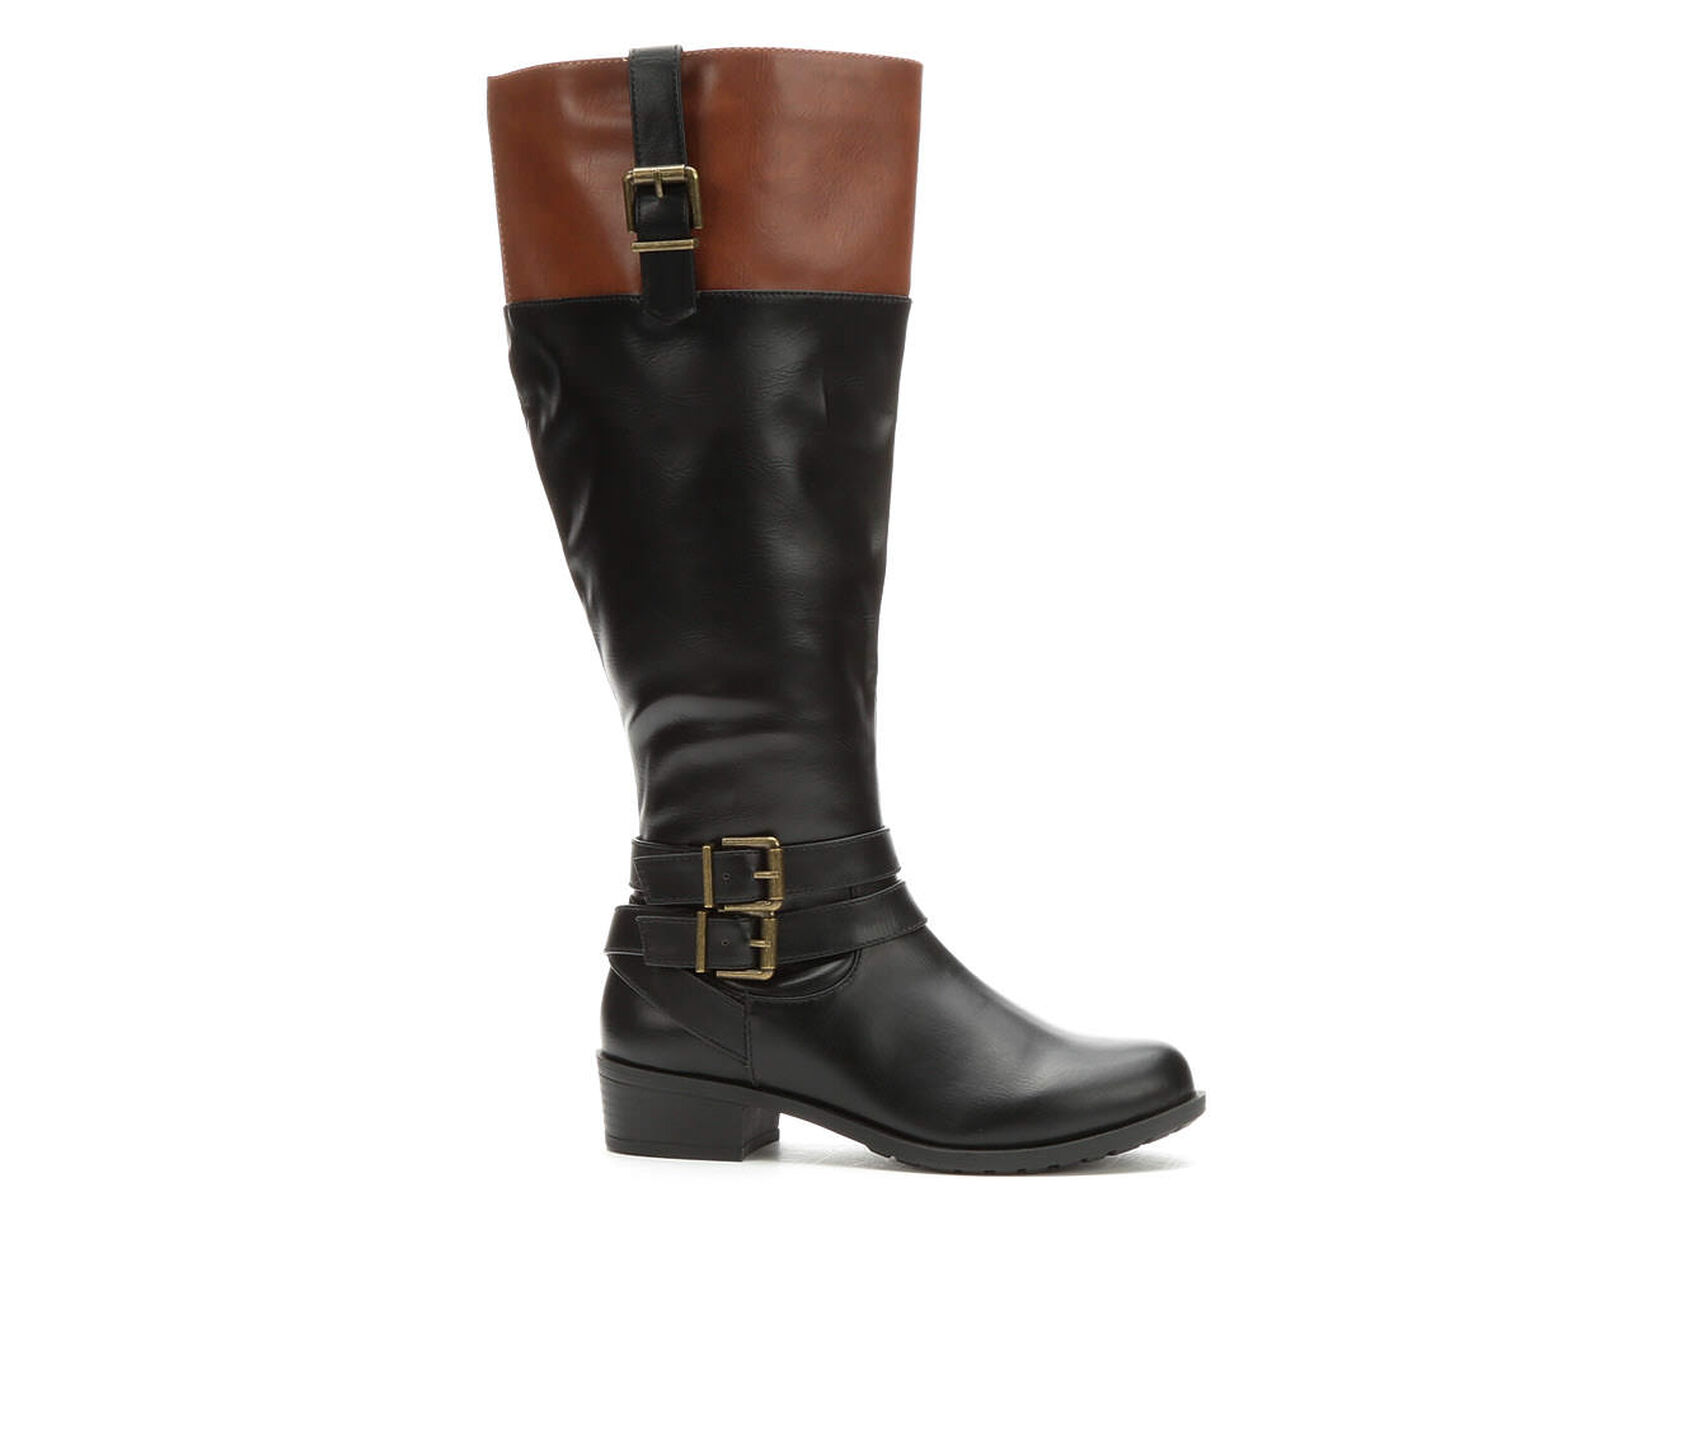 acfb0bcc22d1 ... Solanz Grammercy Wide Width Wide Calf Riding Boots. Previous